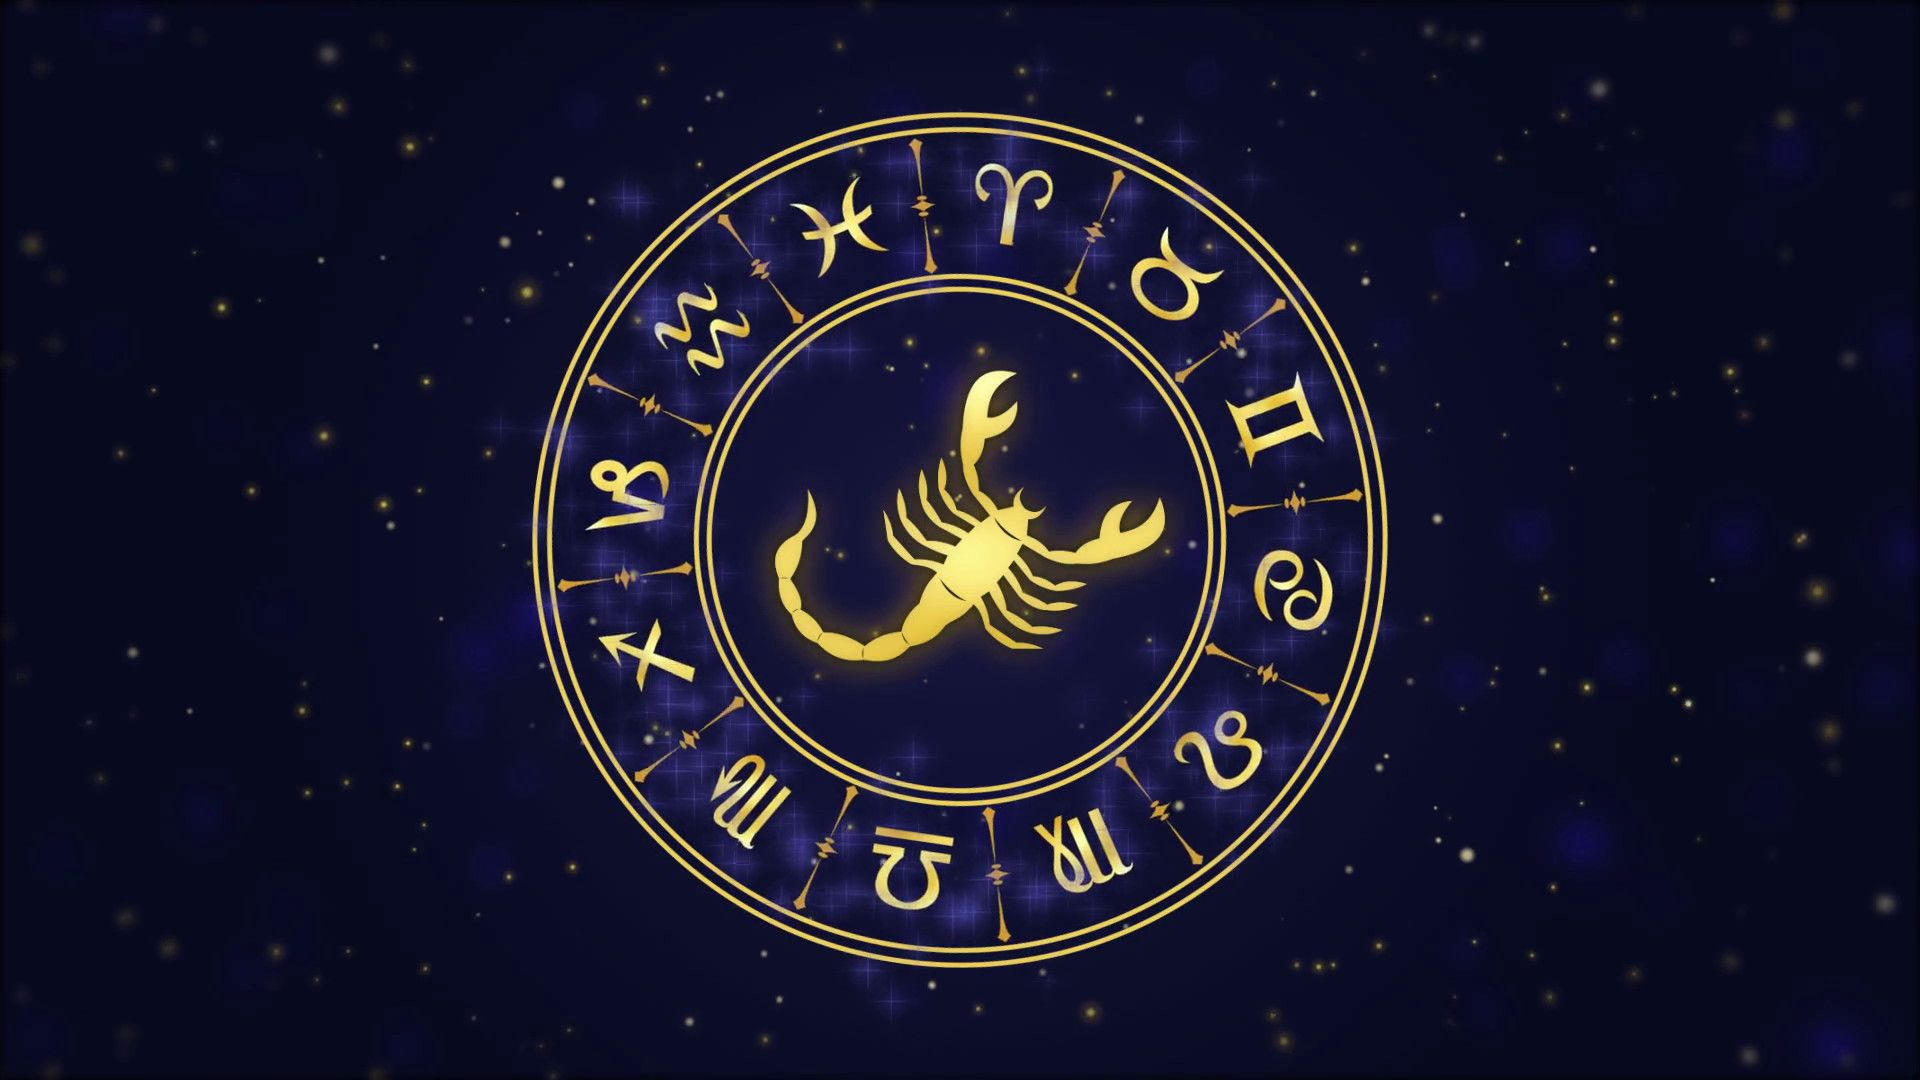 Zodiac Signs Wallpapers Top Free Zodiac Signs Backgrounds Wallpaperaccess